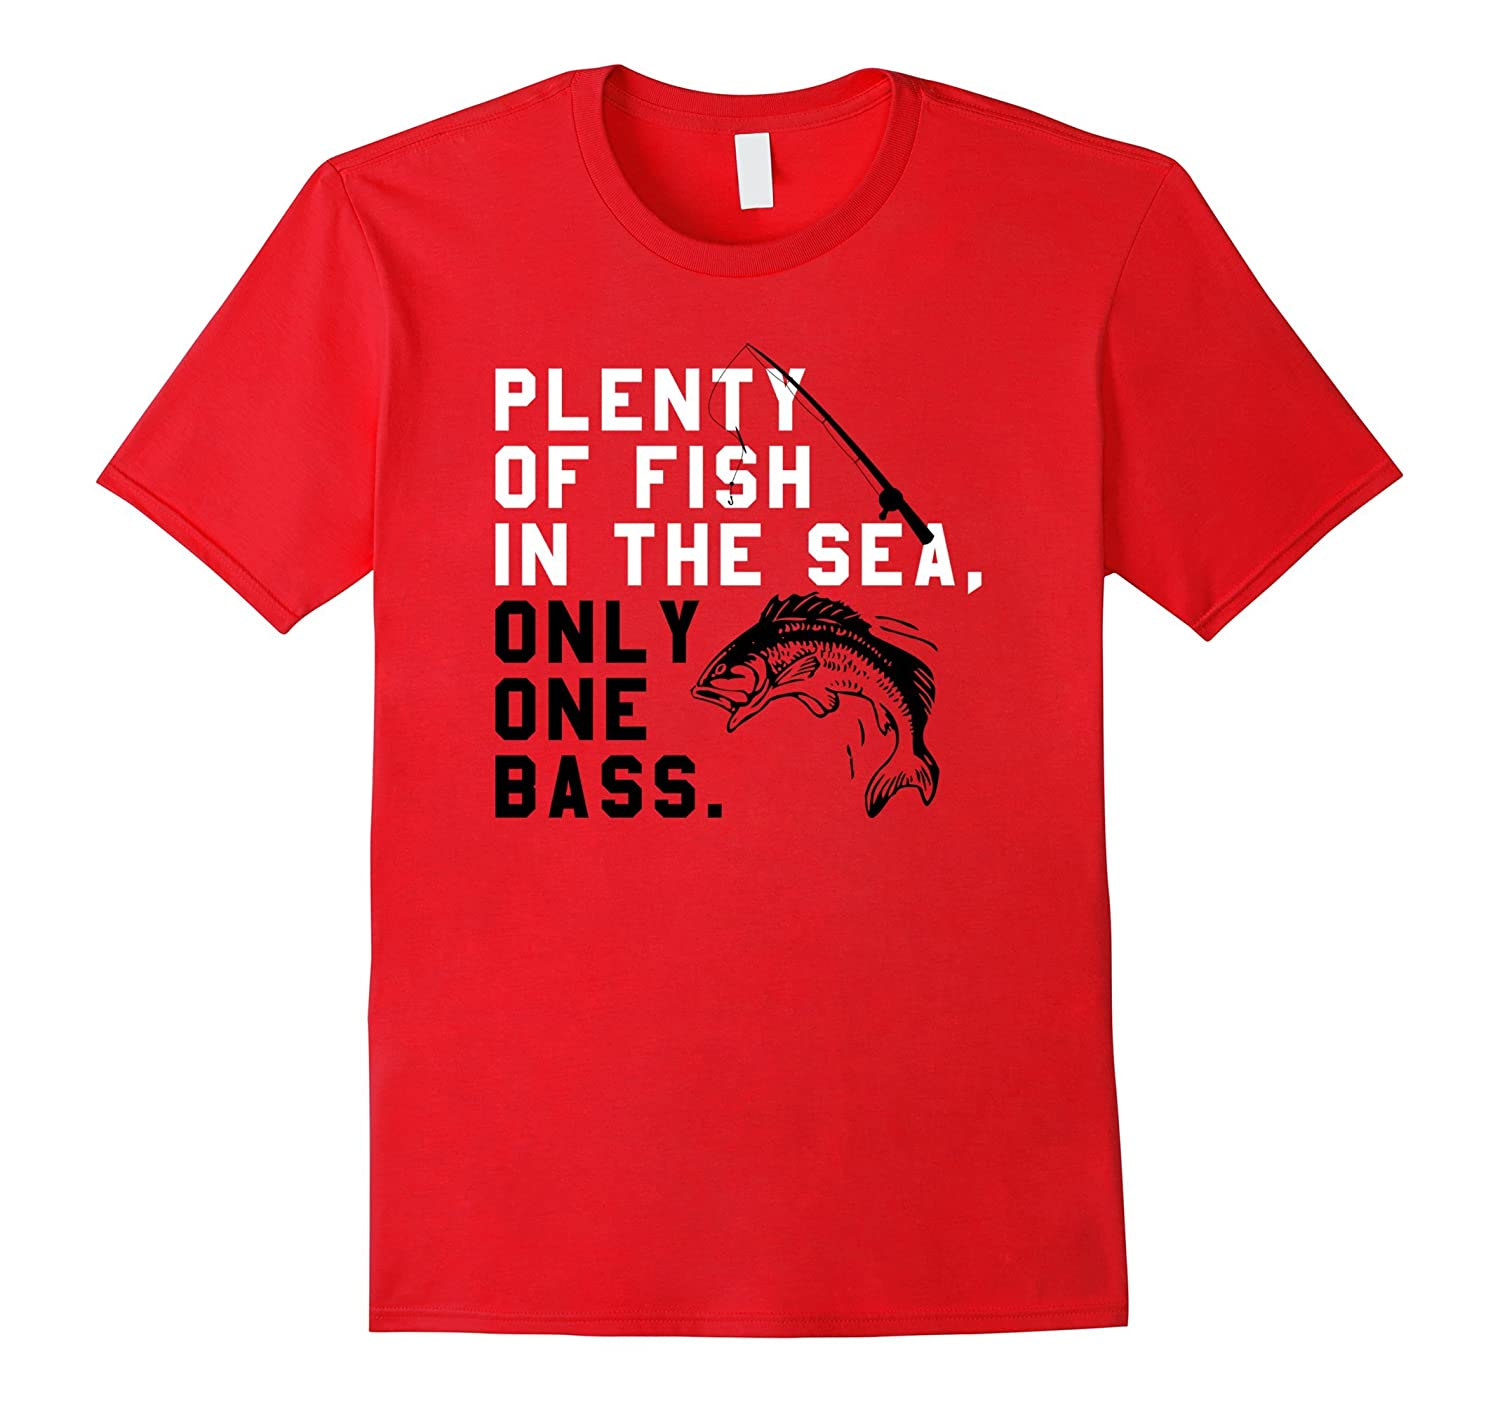 Plenty of fish in the sea only one bass fishing gift t for Plenty of fish in the sea